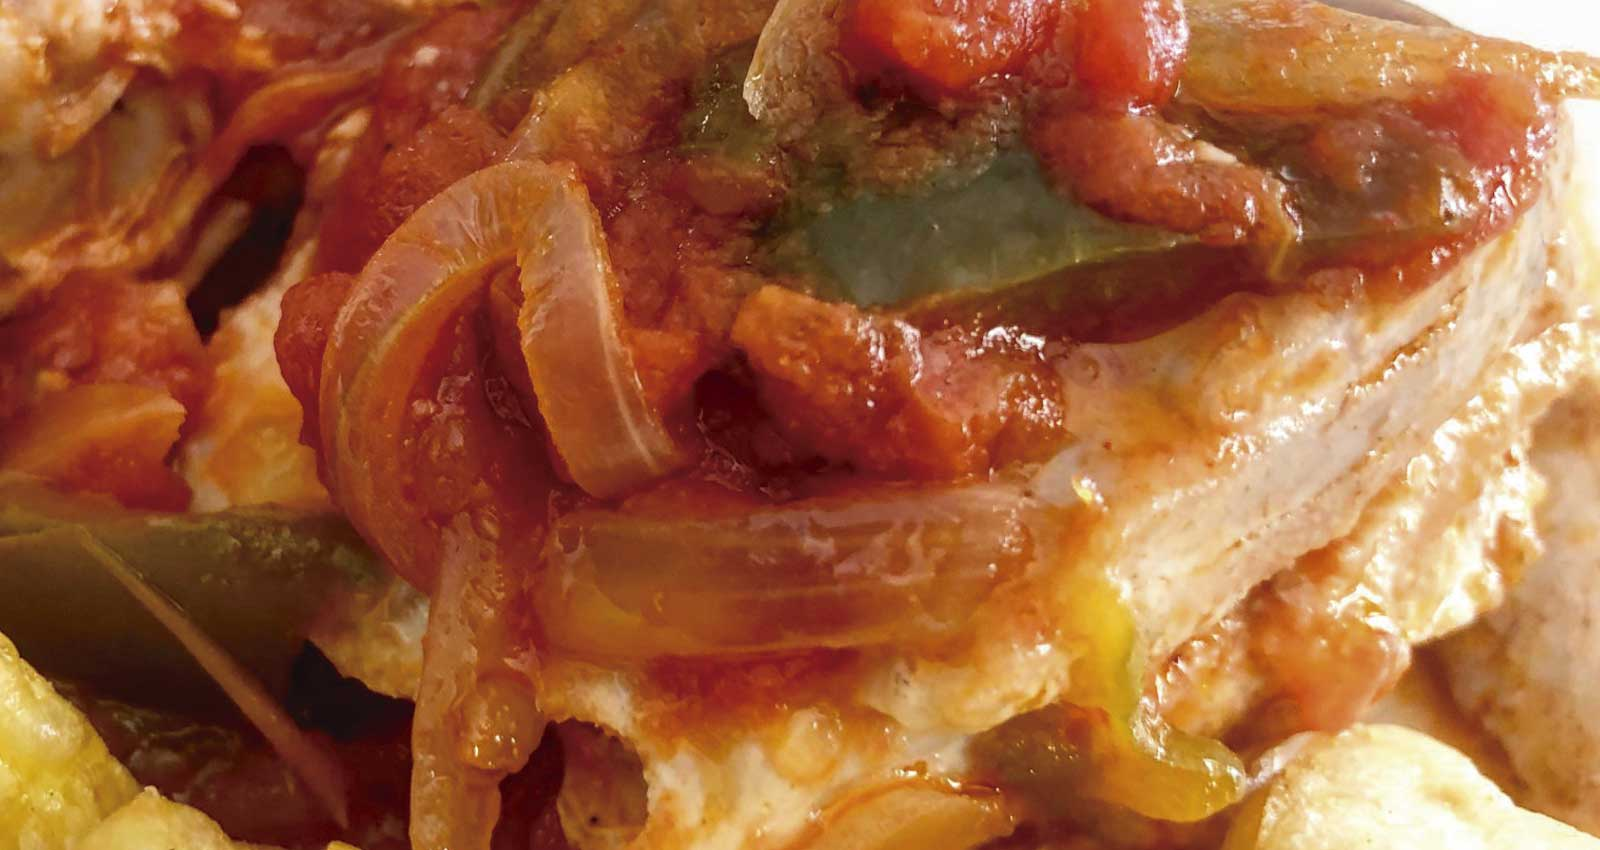 Bonito with tomatoes and peppers - Gastroactitud.  Passion for food